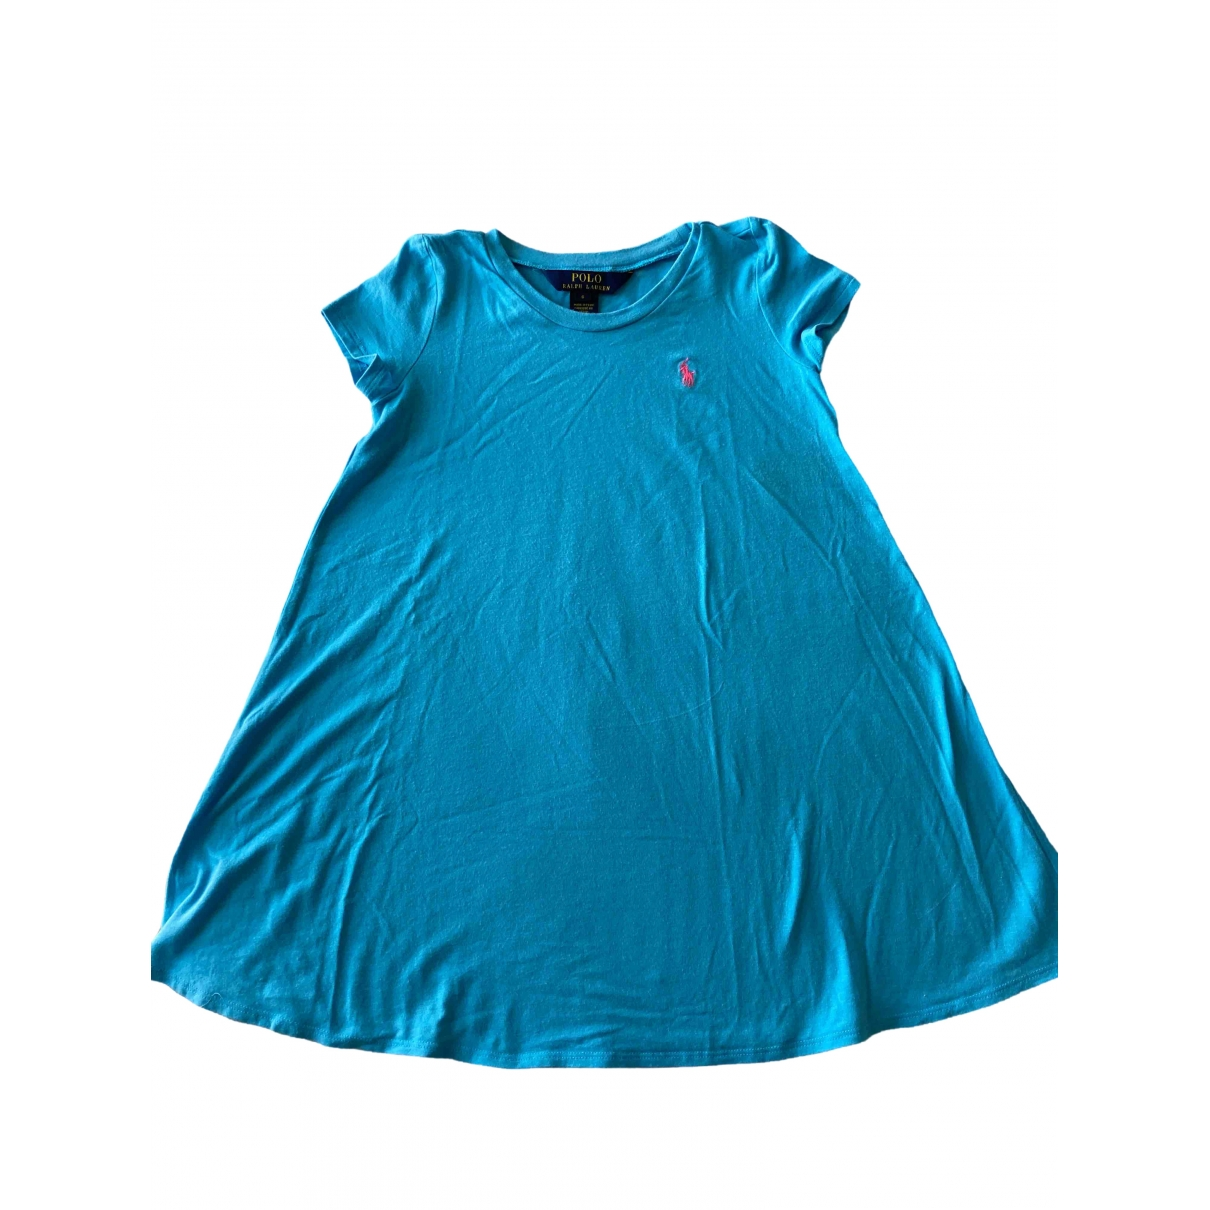 Polo Ralph Lauren \N Turquoise Cotton dress for Kids 6 years - until 45 inches UK